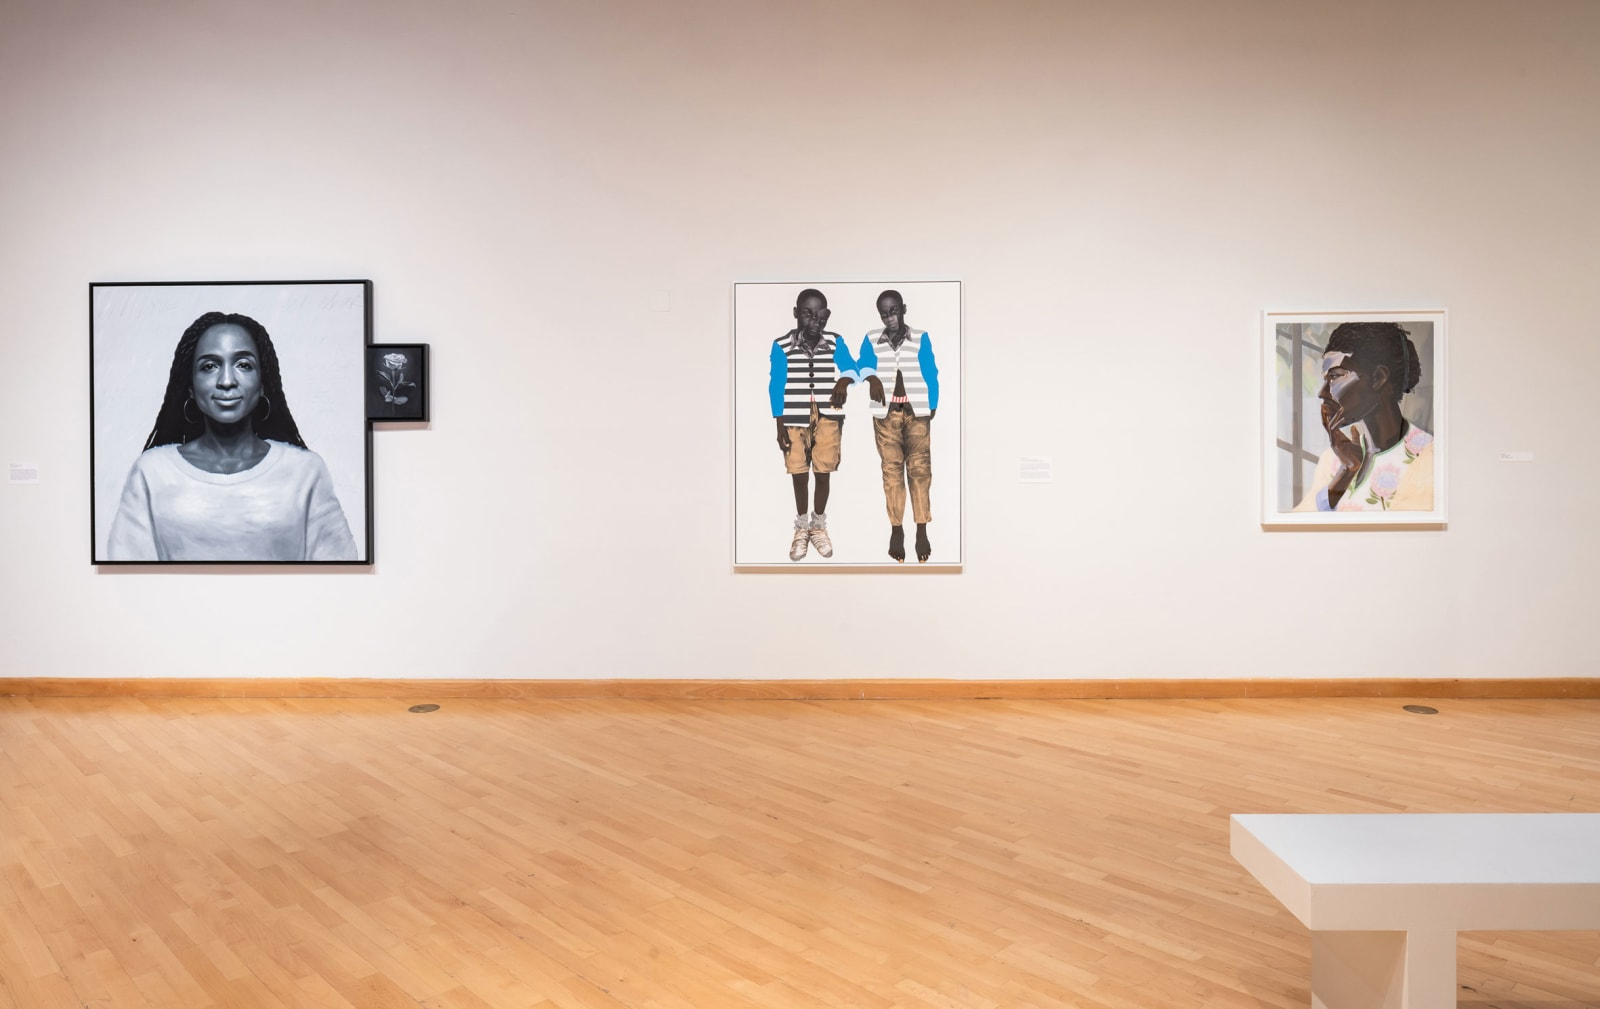 <p>Installation view: 'Plumb Line: Charles White and the Contemporary', Californian African American Museum (CAAM), Los Angeles, CA (2019).</p>